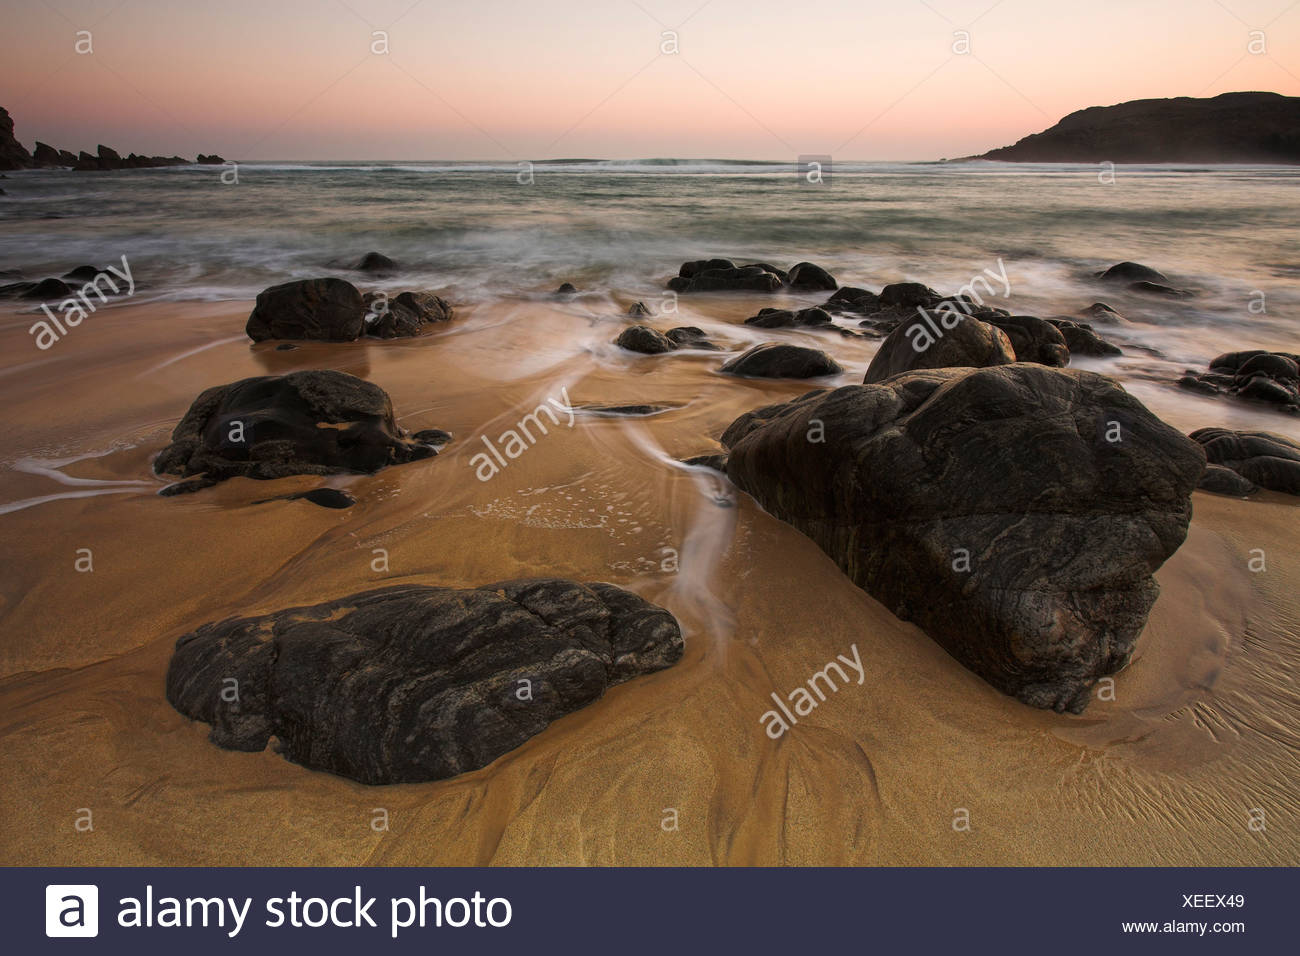 Rocks and sunset at Dhail Mor beach, Lewis, Outer Hebrides - Stock Image